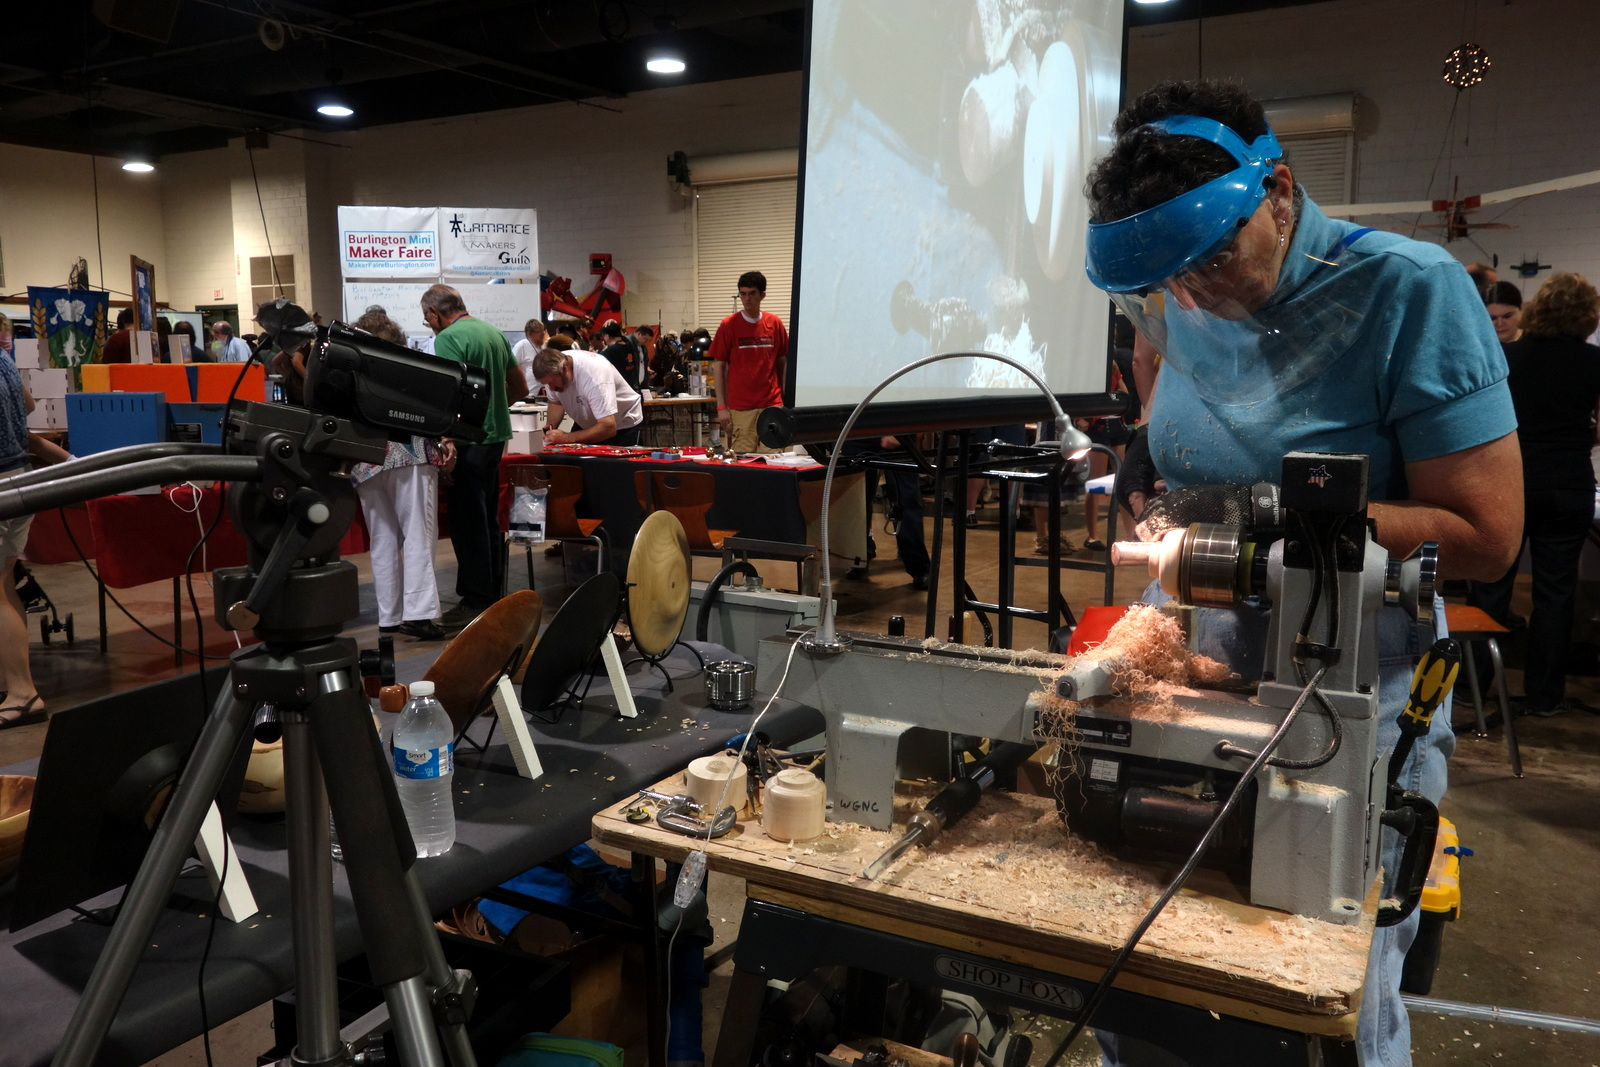 The Woodturners Guild were conducting live demos, using a camera and projector setup similar to how they teach classes.